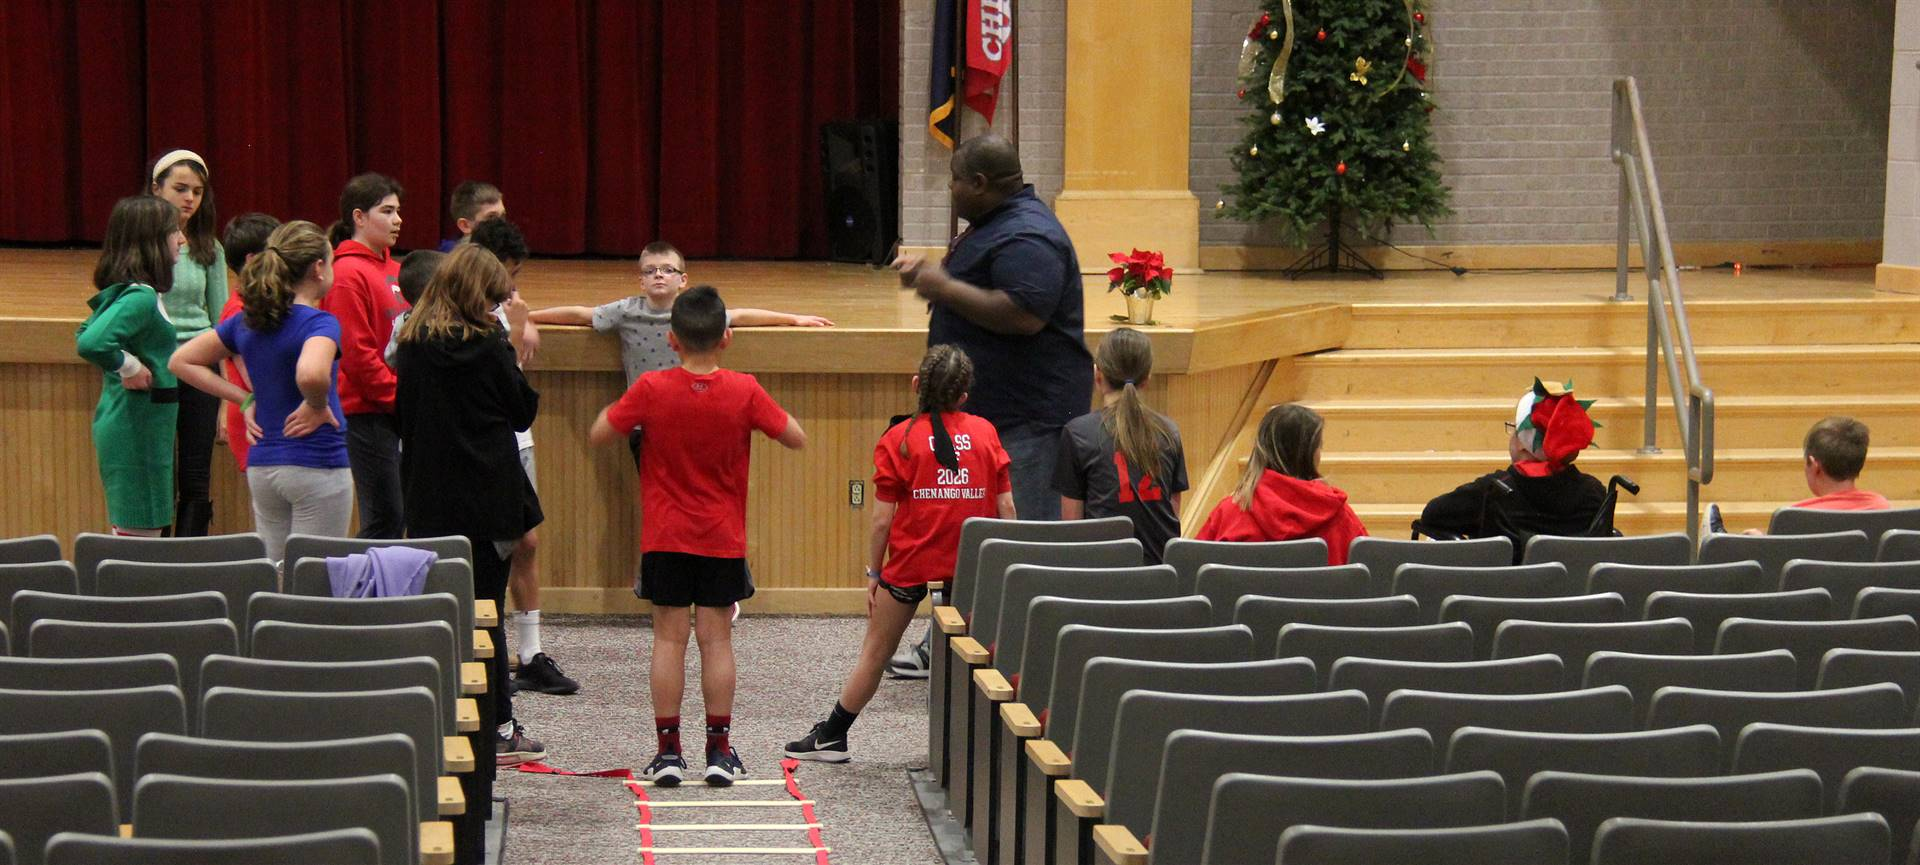 agility instructor speaking with students